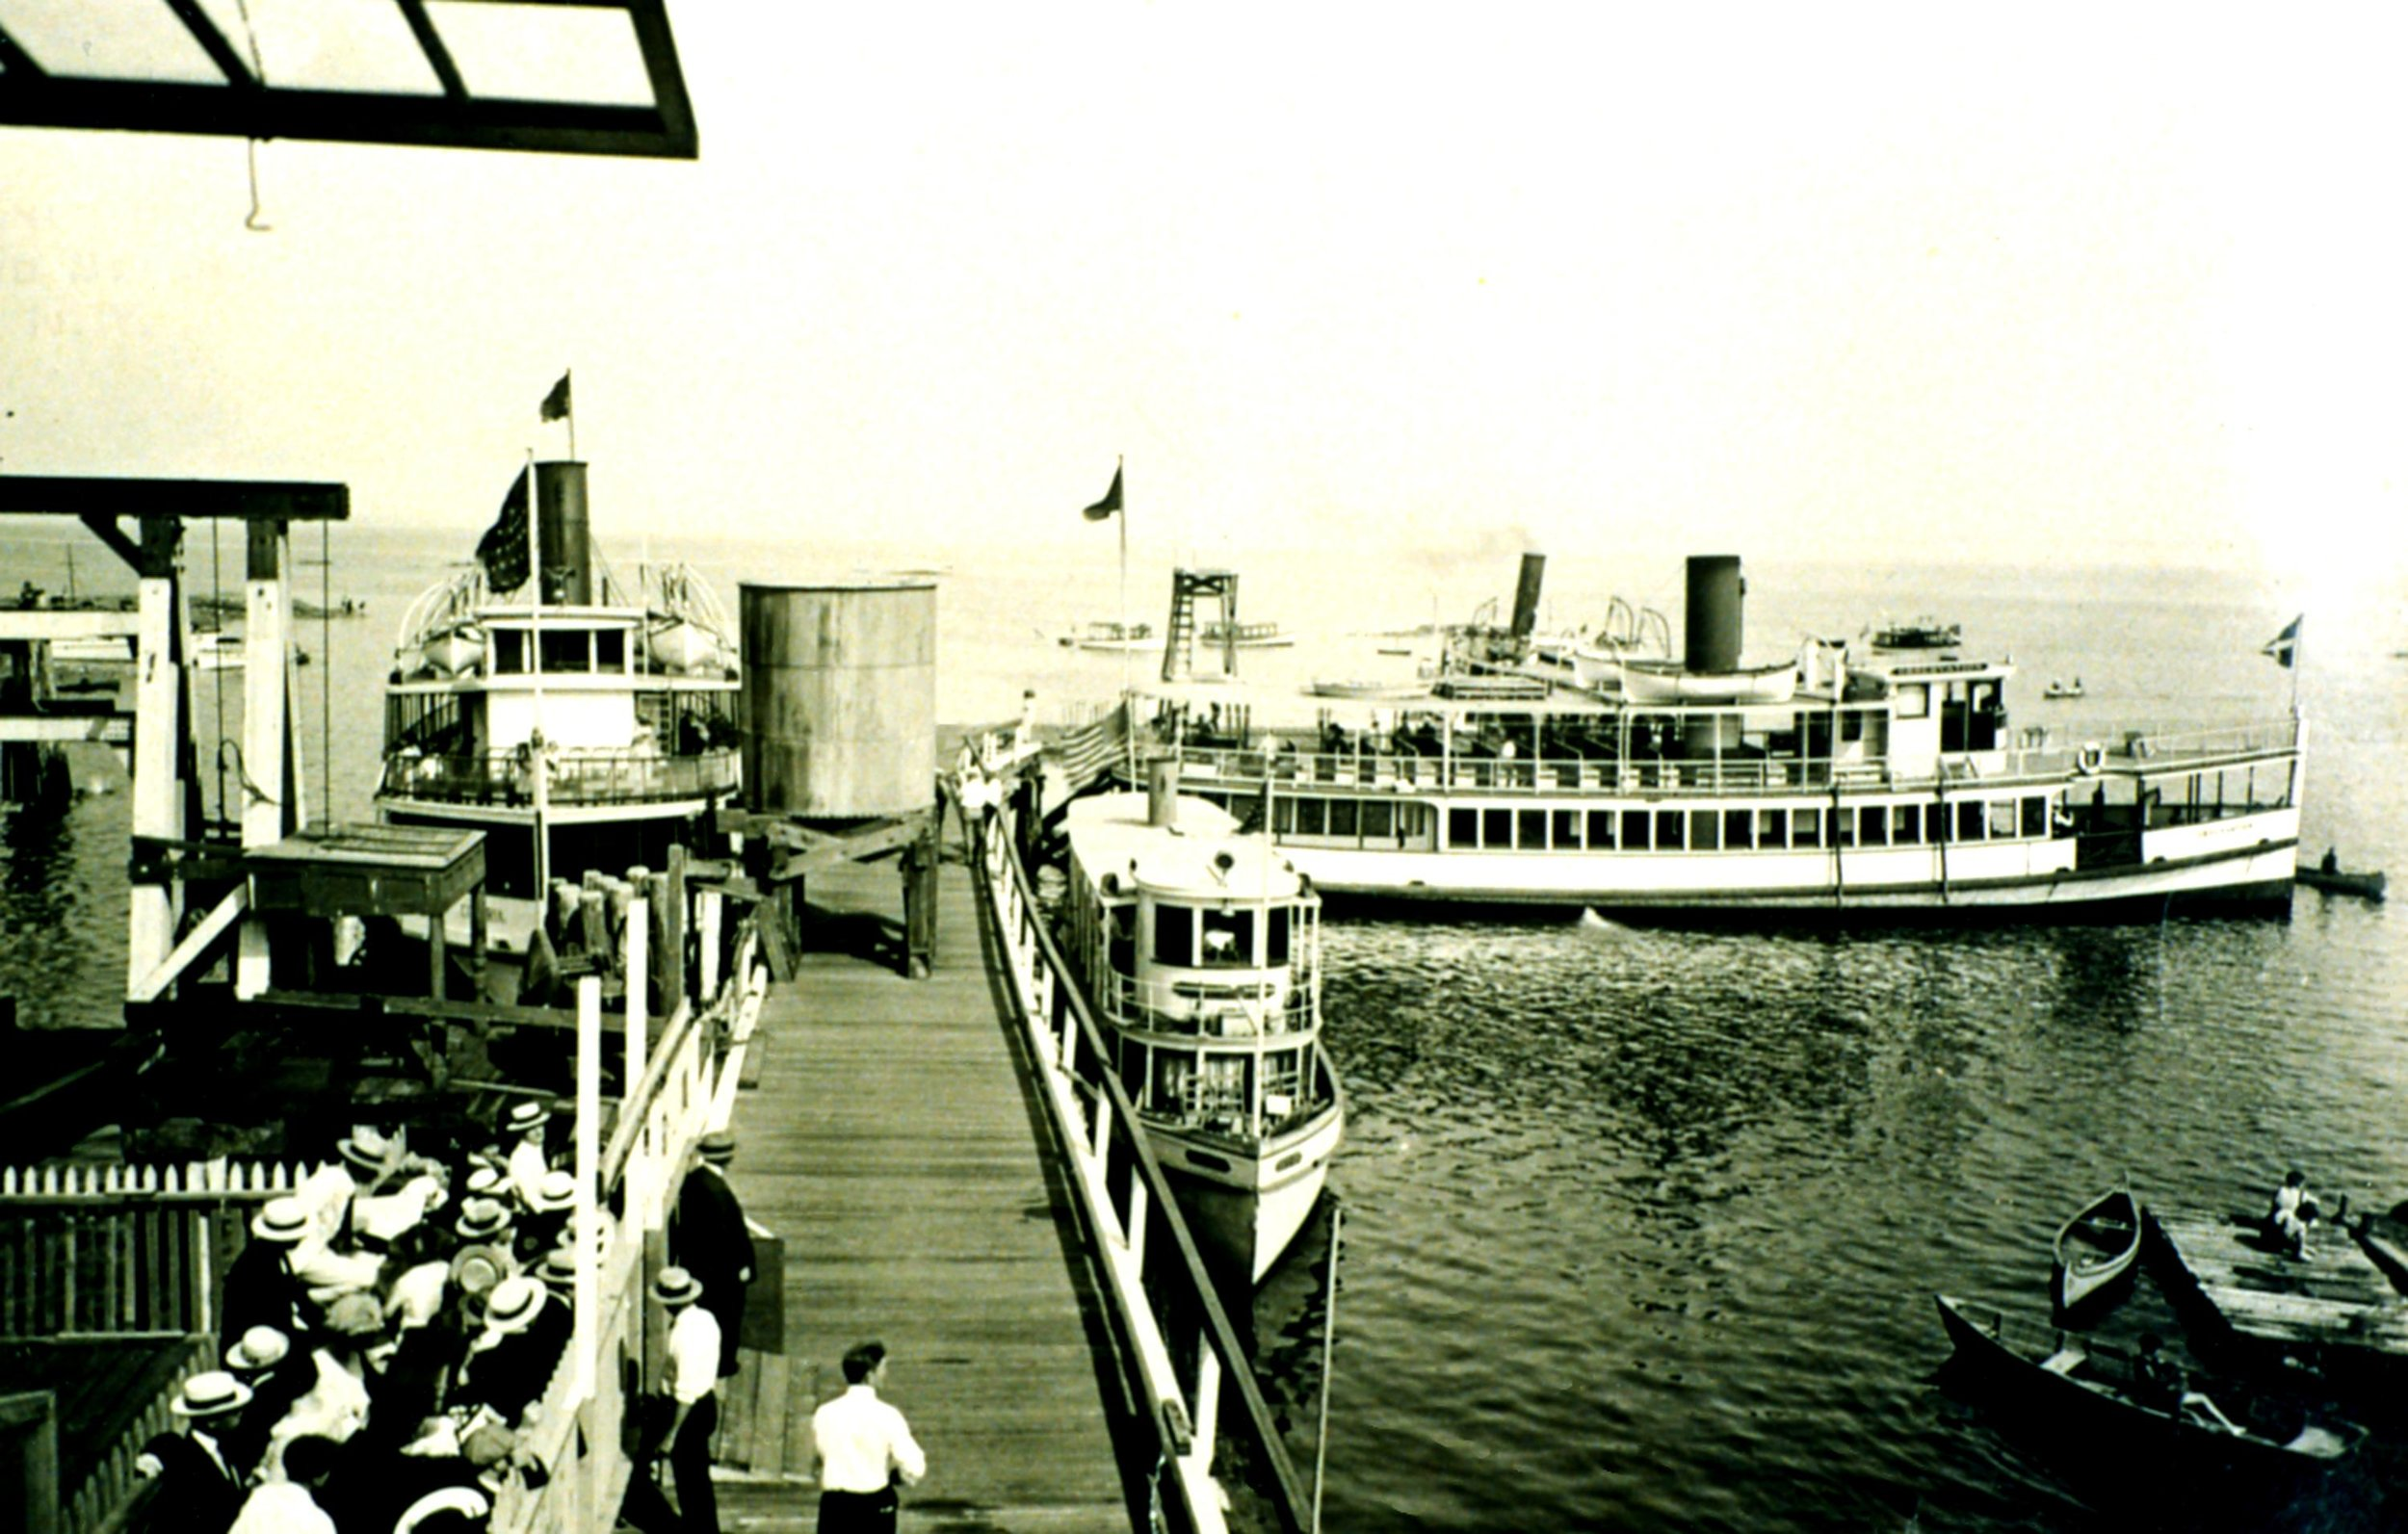 Ferries at Playland Pier c. 1930